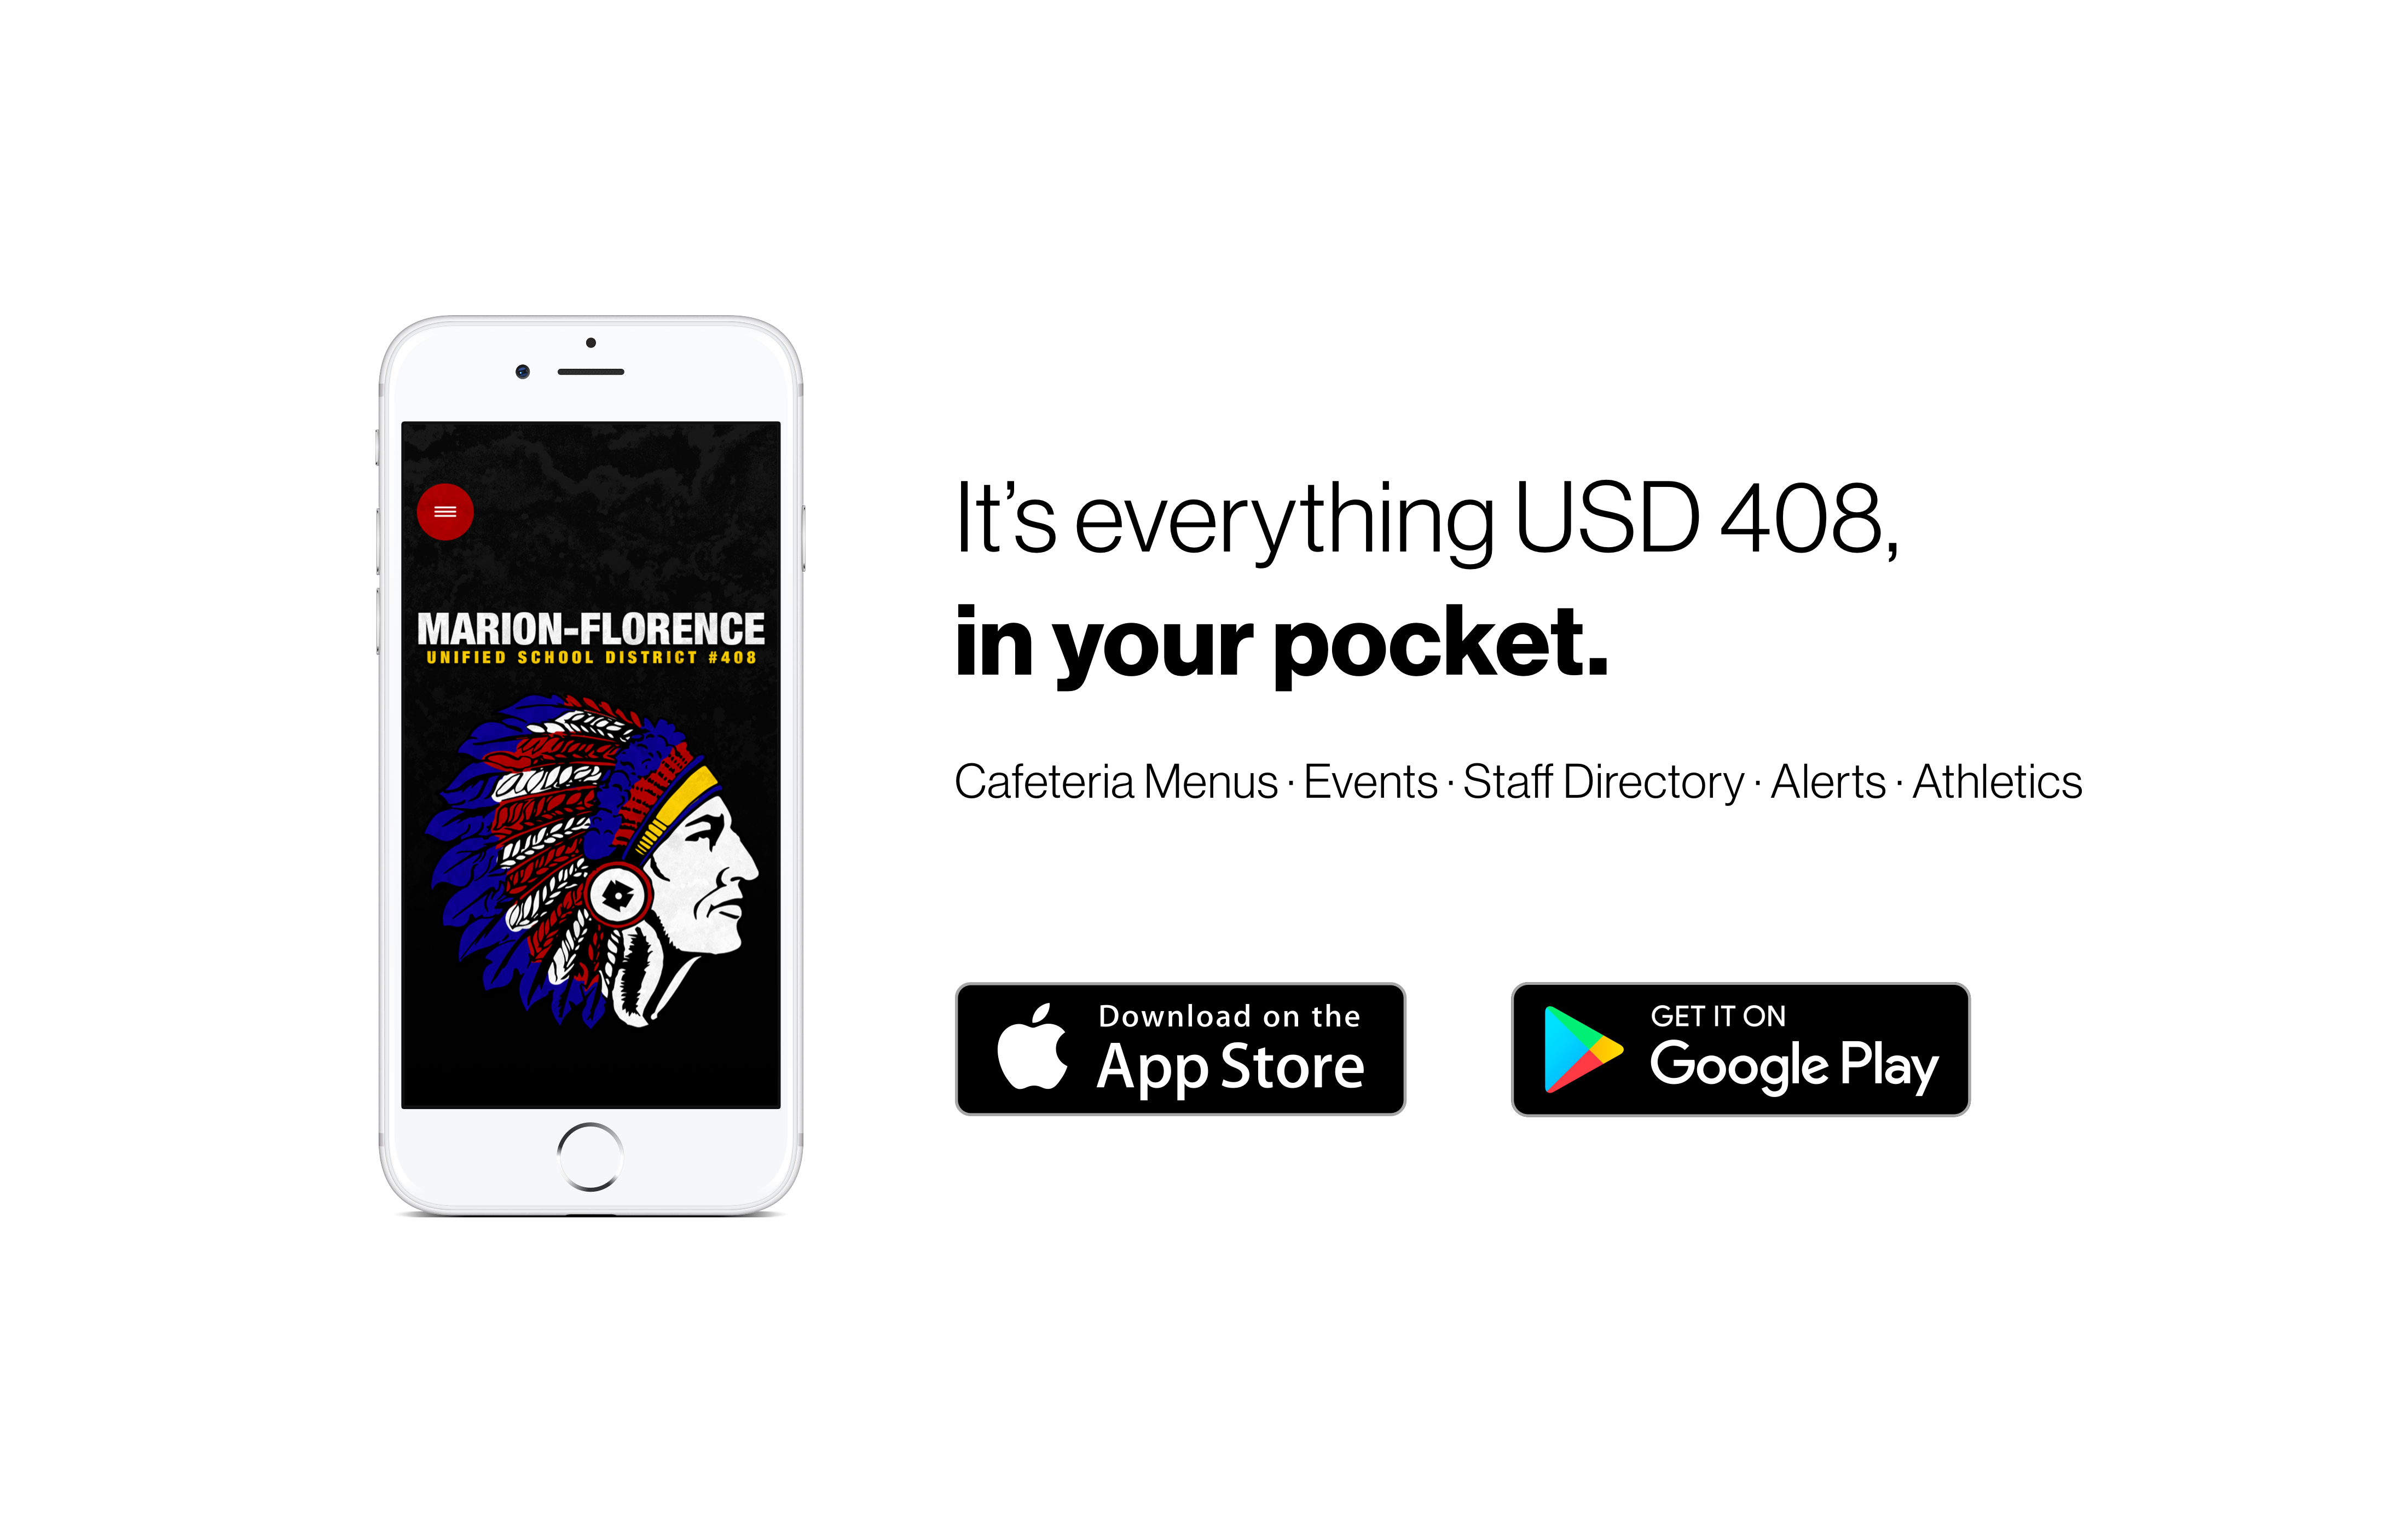 It's everything USD 408, in your pocket.